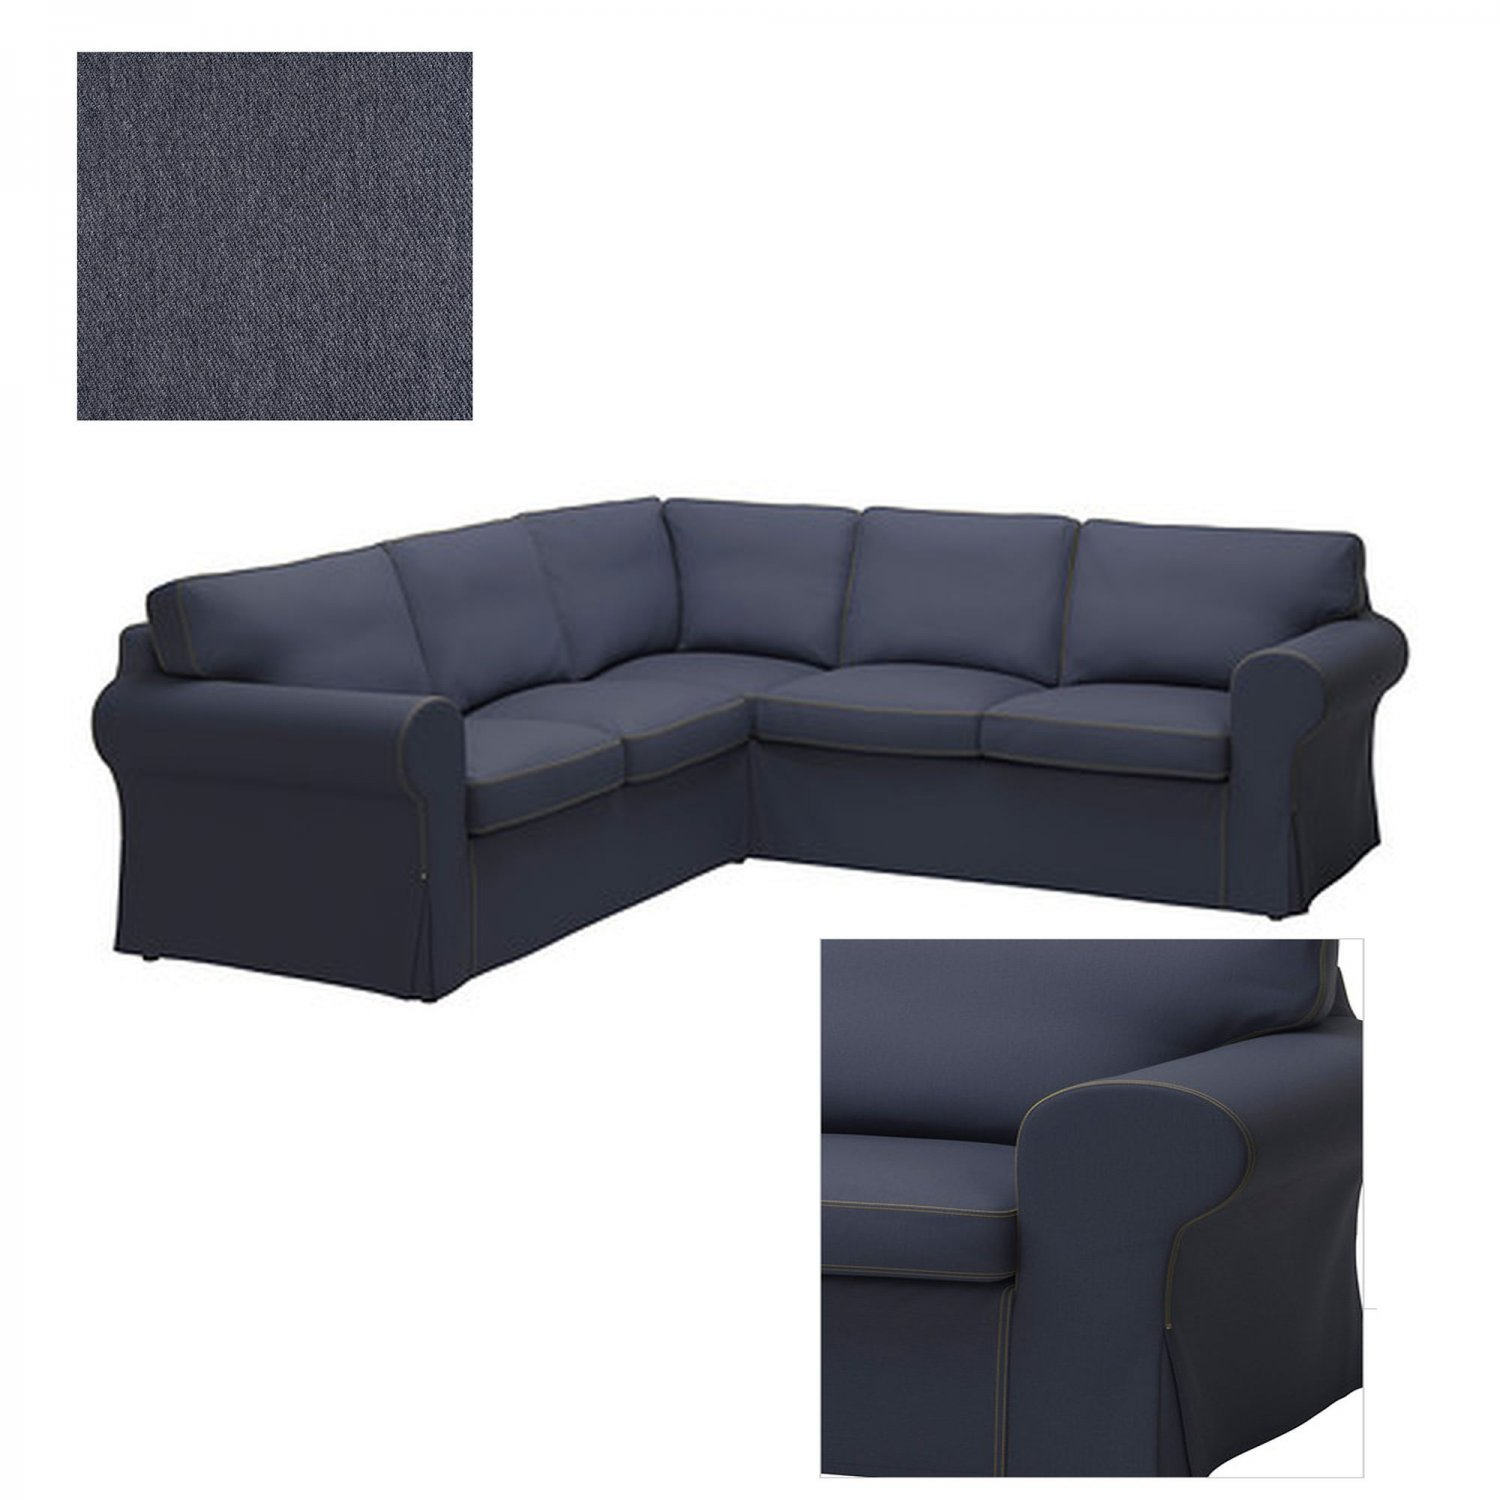 Ikea Ektorp 2 2 Corner Sofa Cover Slipcover Jonsboda Blue Denim